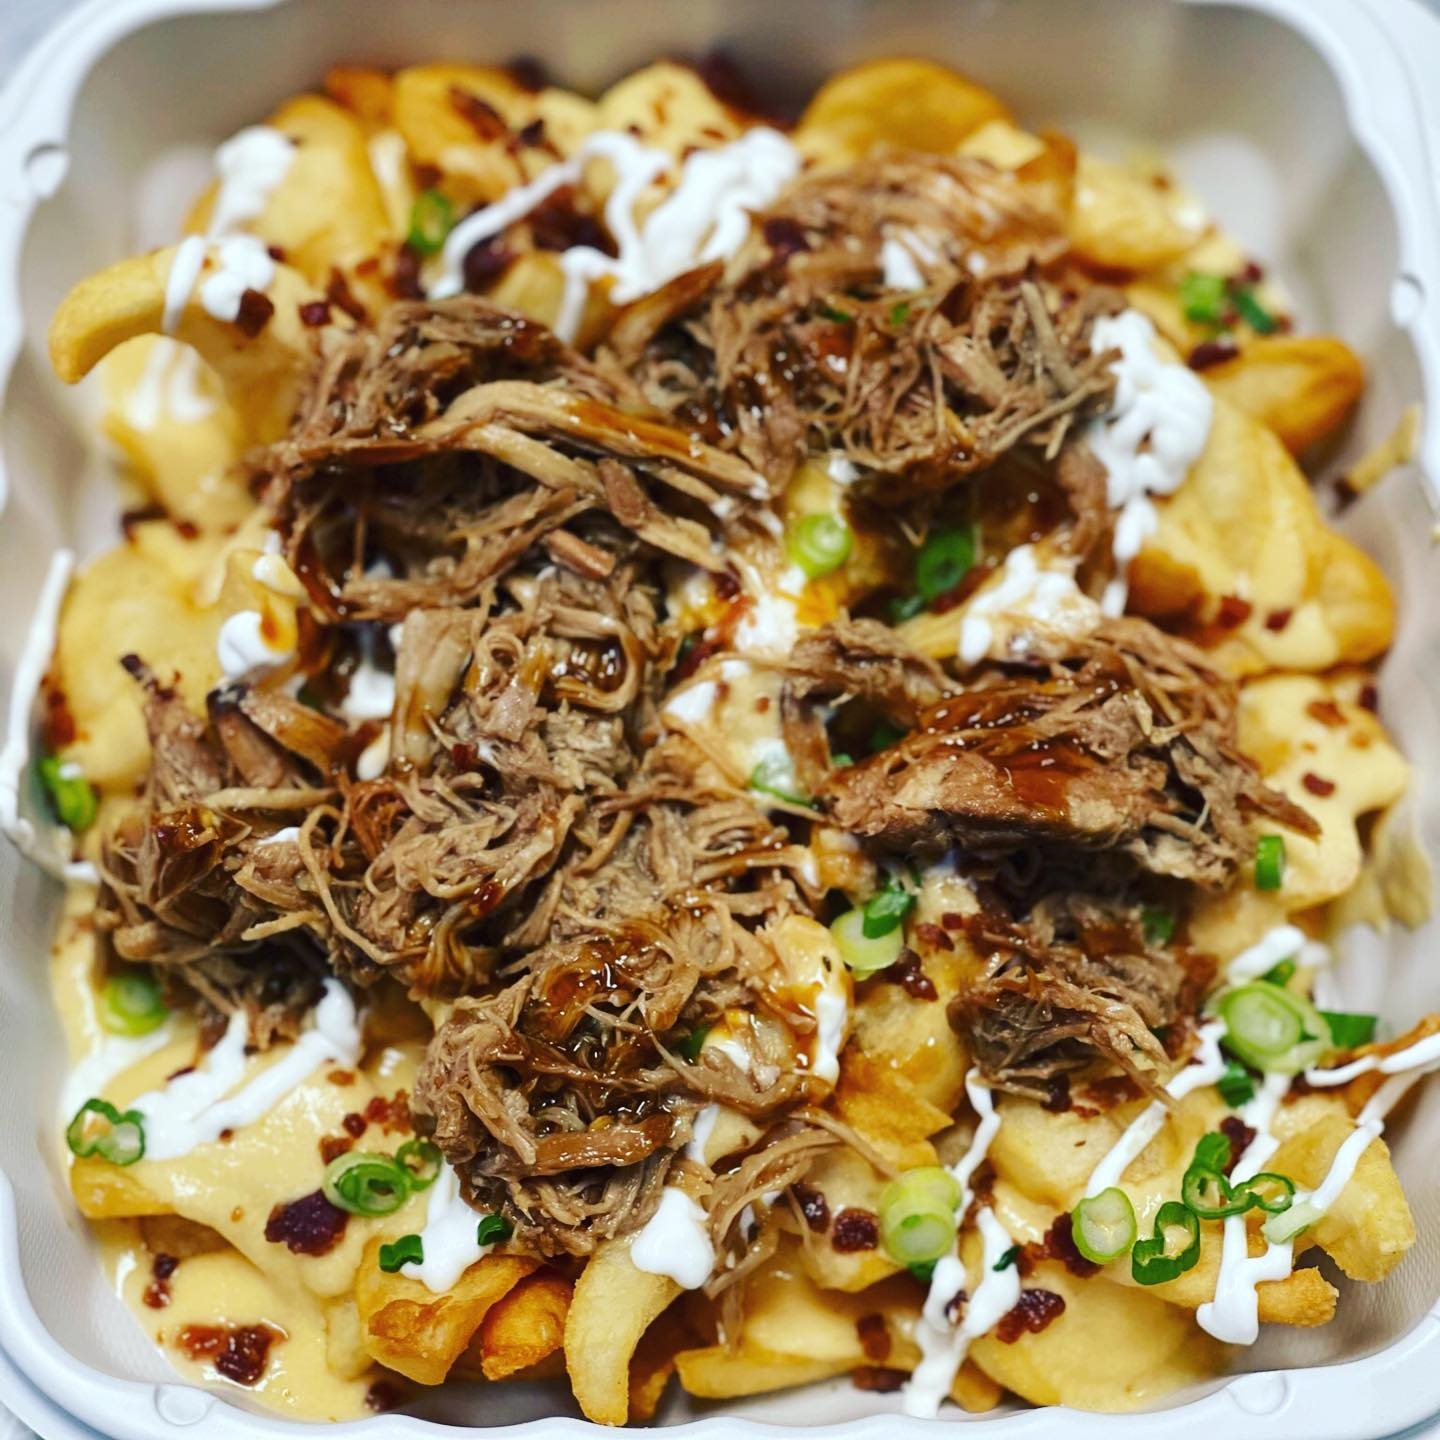 fries topped with cheese, shredded meat, sauce, and chives